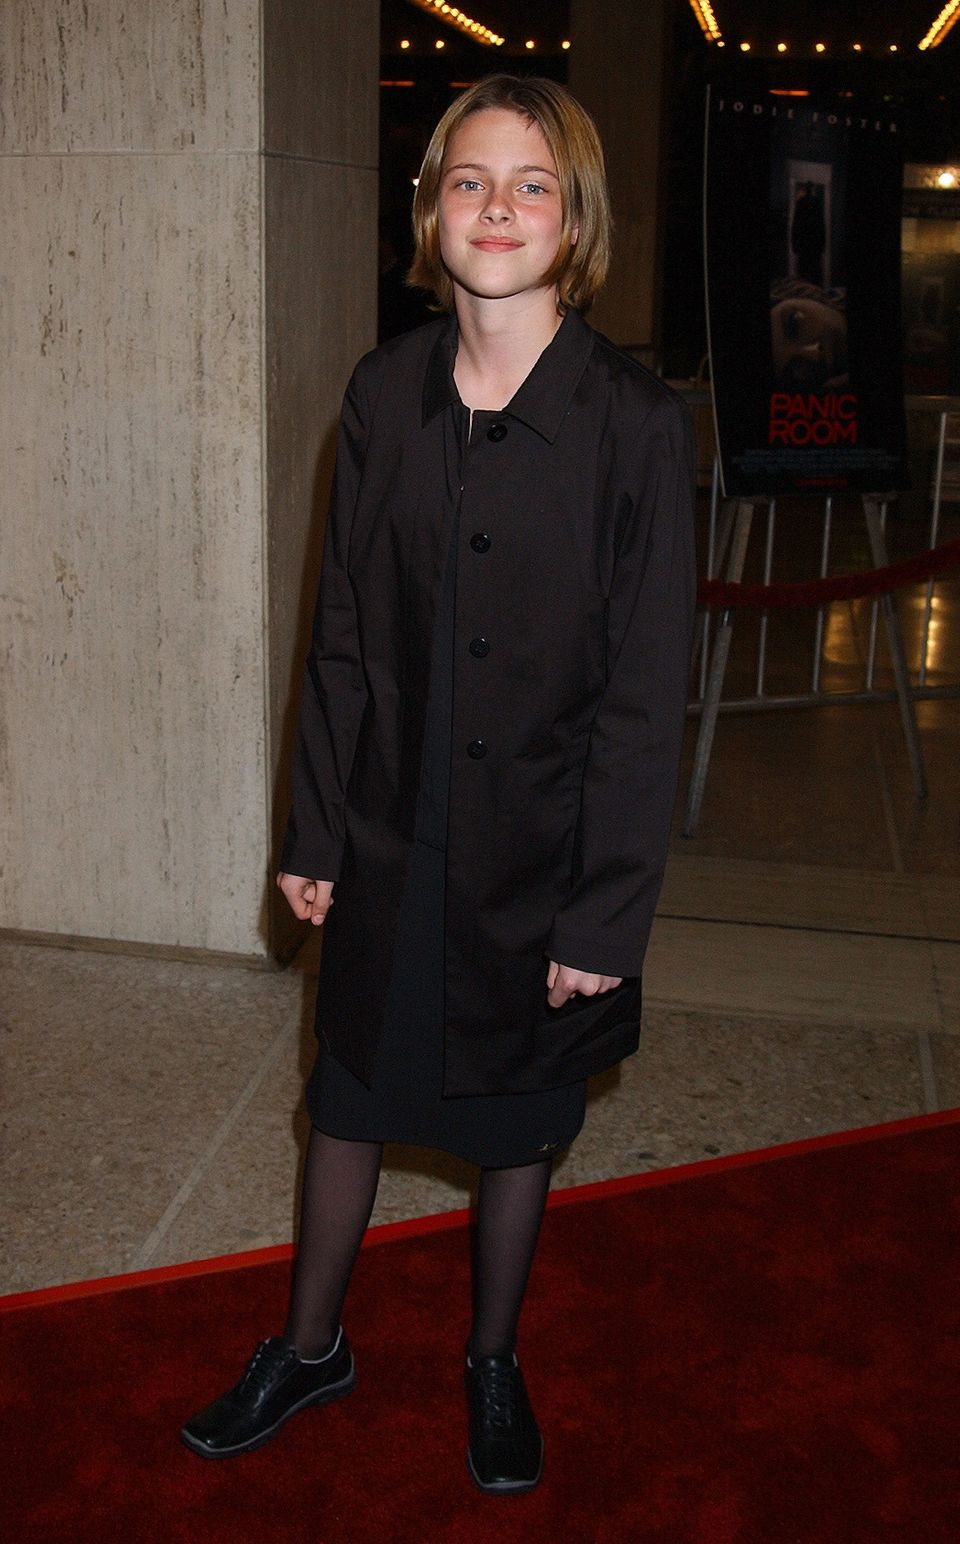 At the premiere of 'Panic Room' on March 18, 2002.